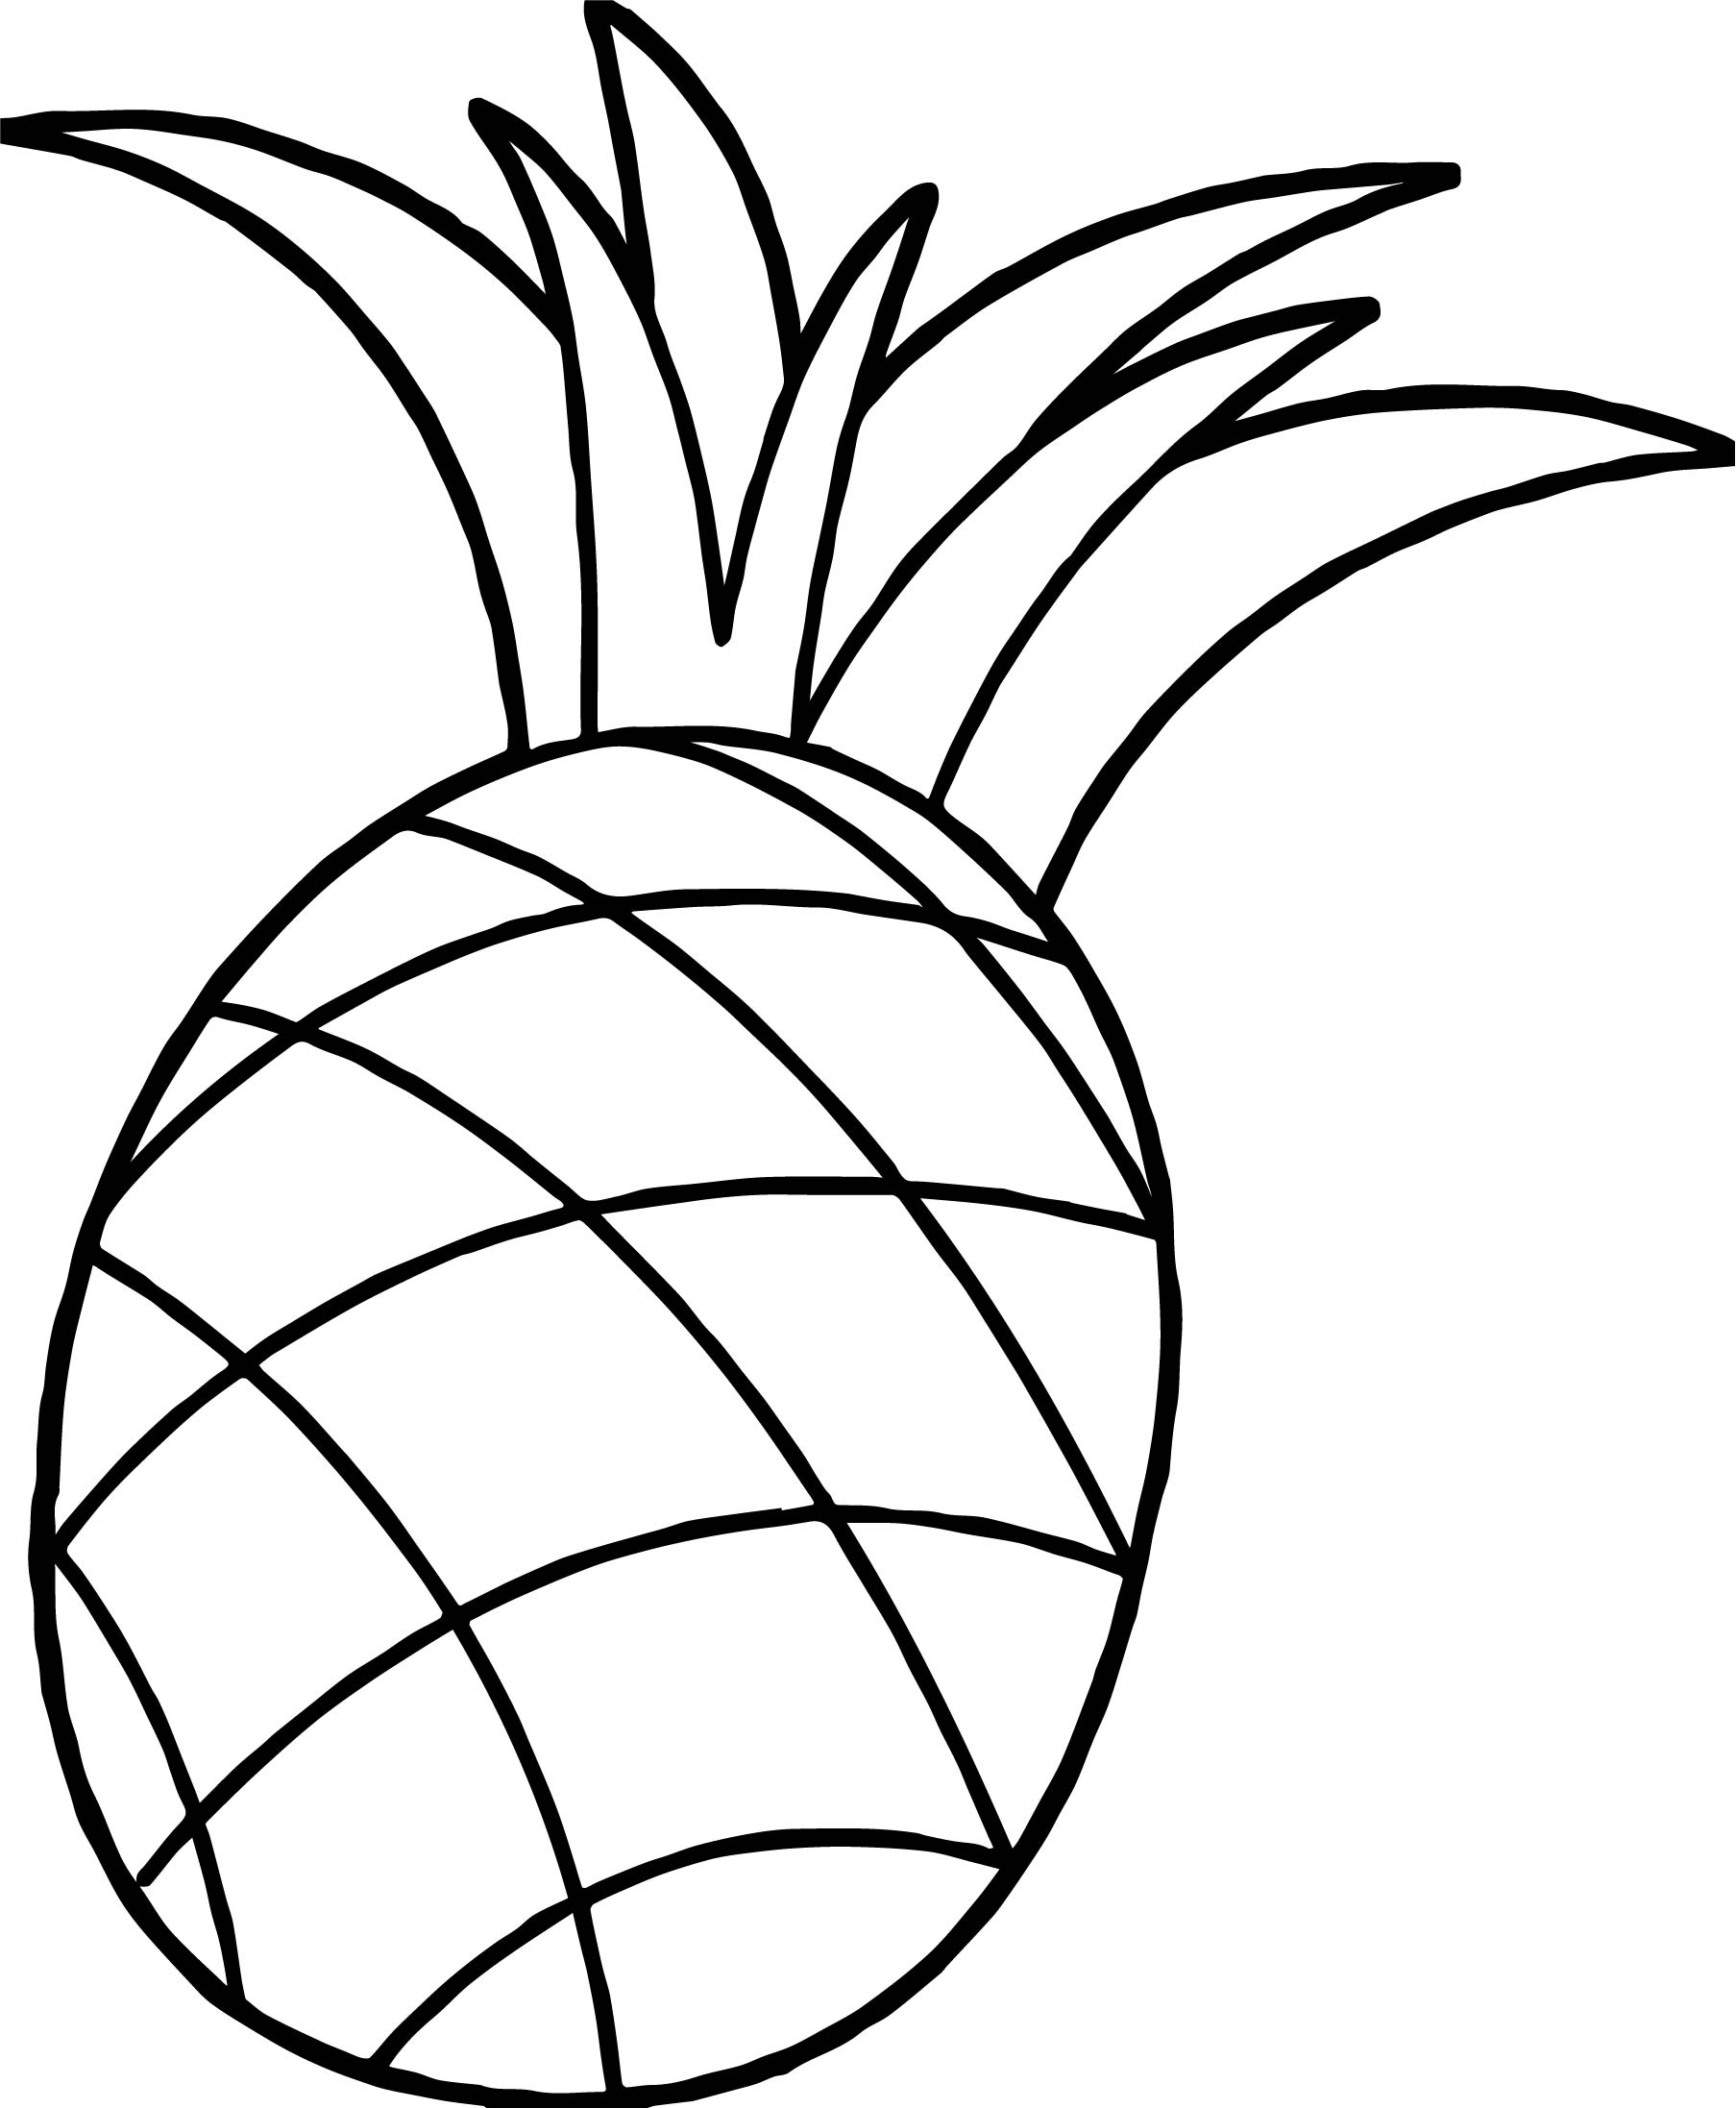 pineapple coloring image pineapple coloring pages image coloring pineapple